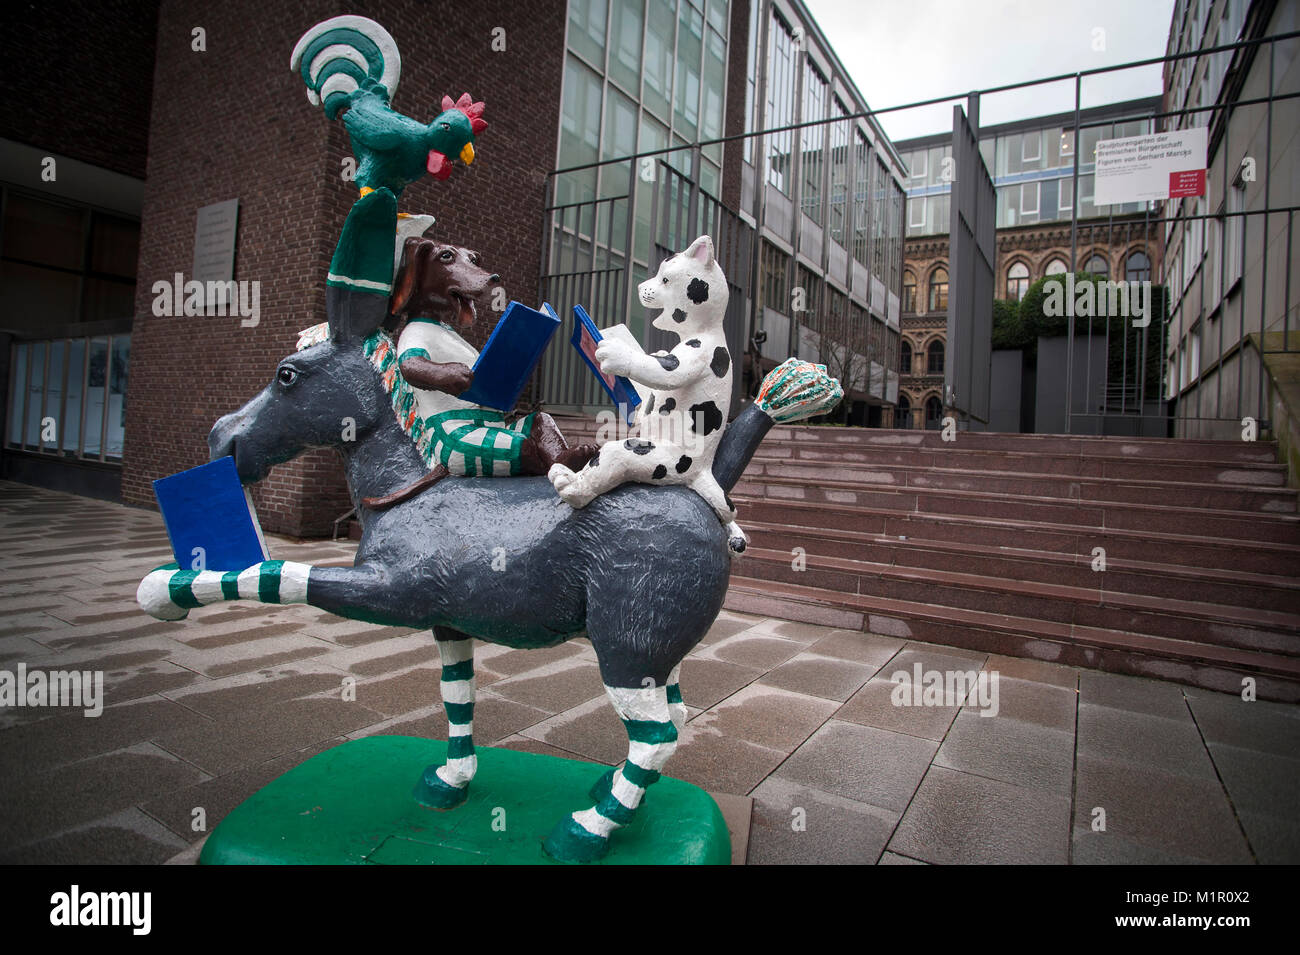 The 'Town Musicians of Bremen' a fairytale by the Brothers Grimm off the Market Square in Bremen, Germany. - Stock Image